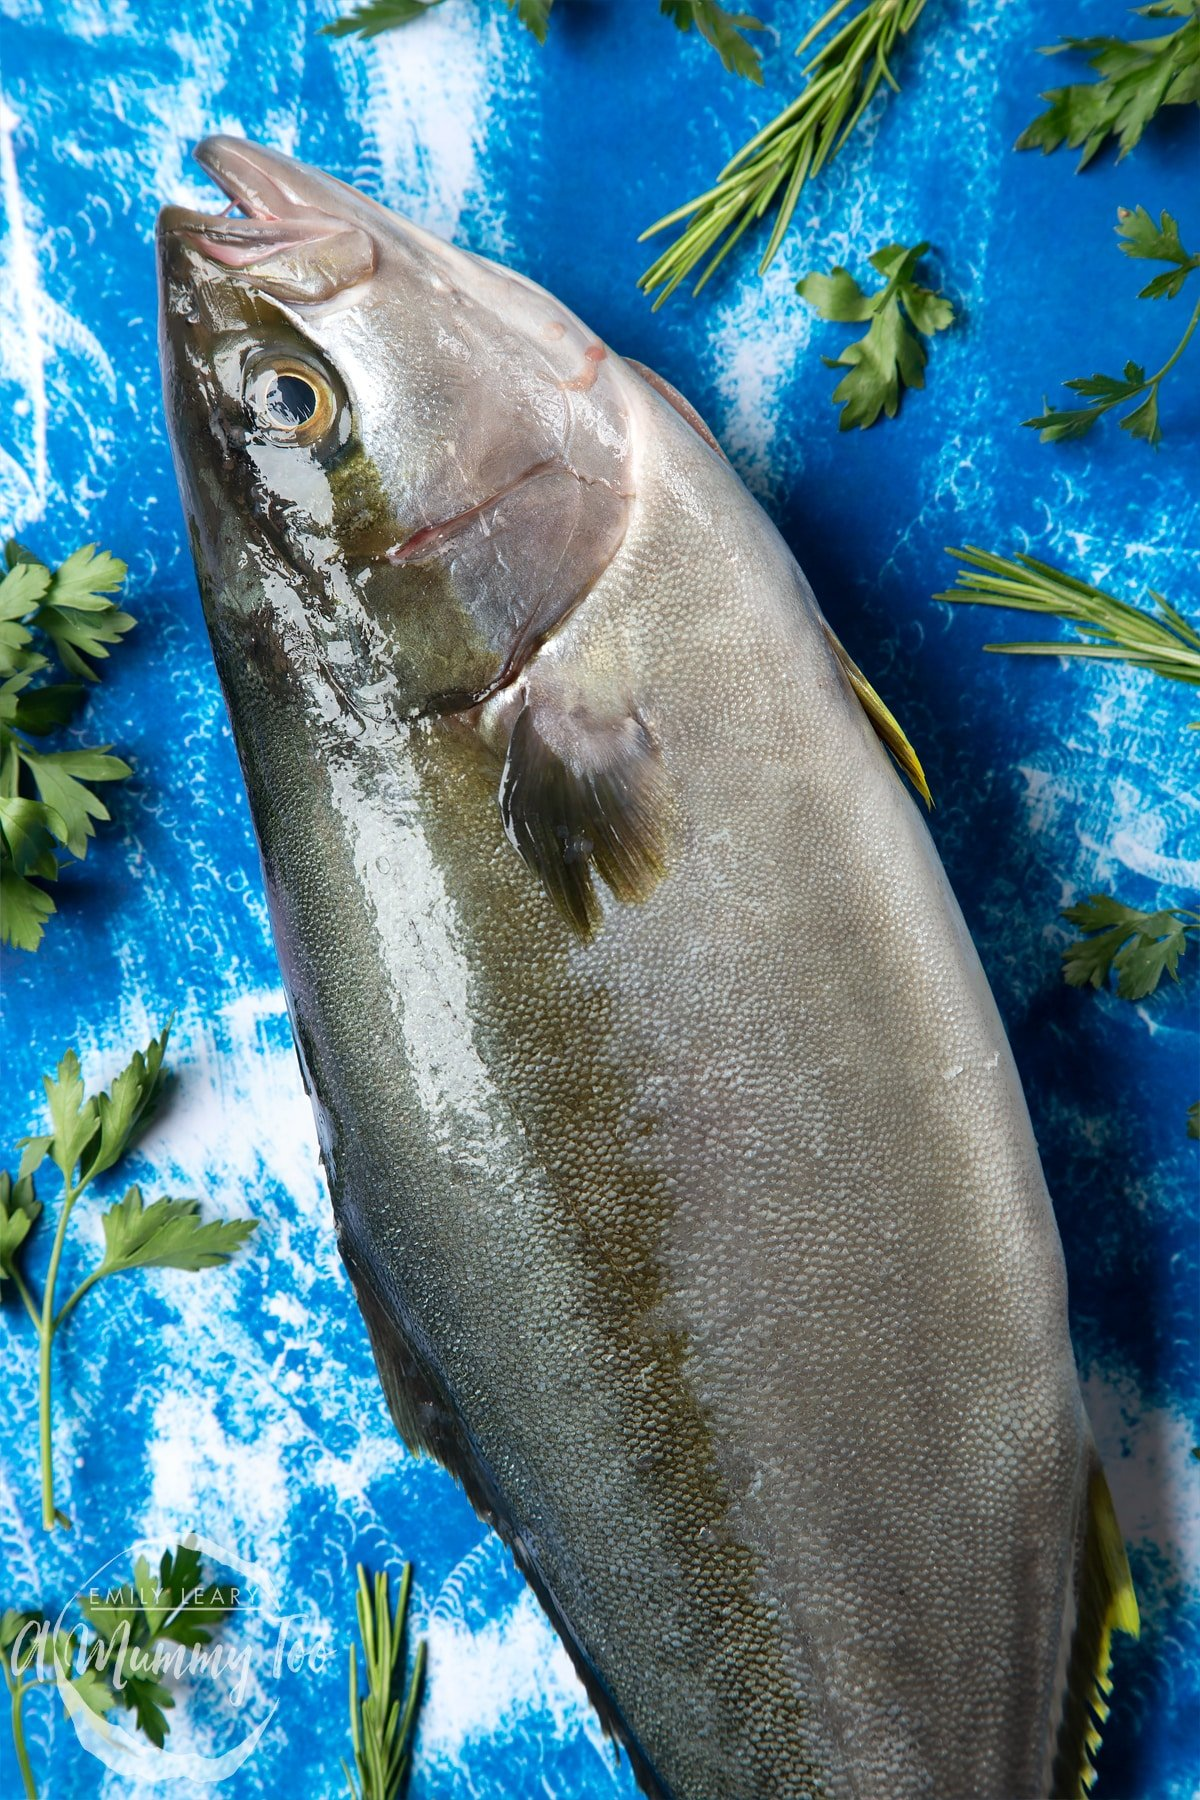 Focus on the head of a Dutch Yellowtail fish on a blue background